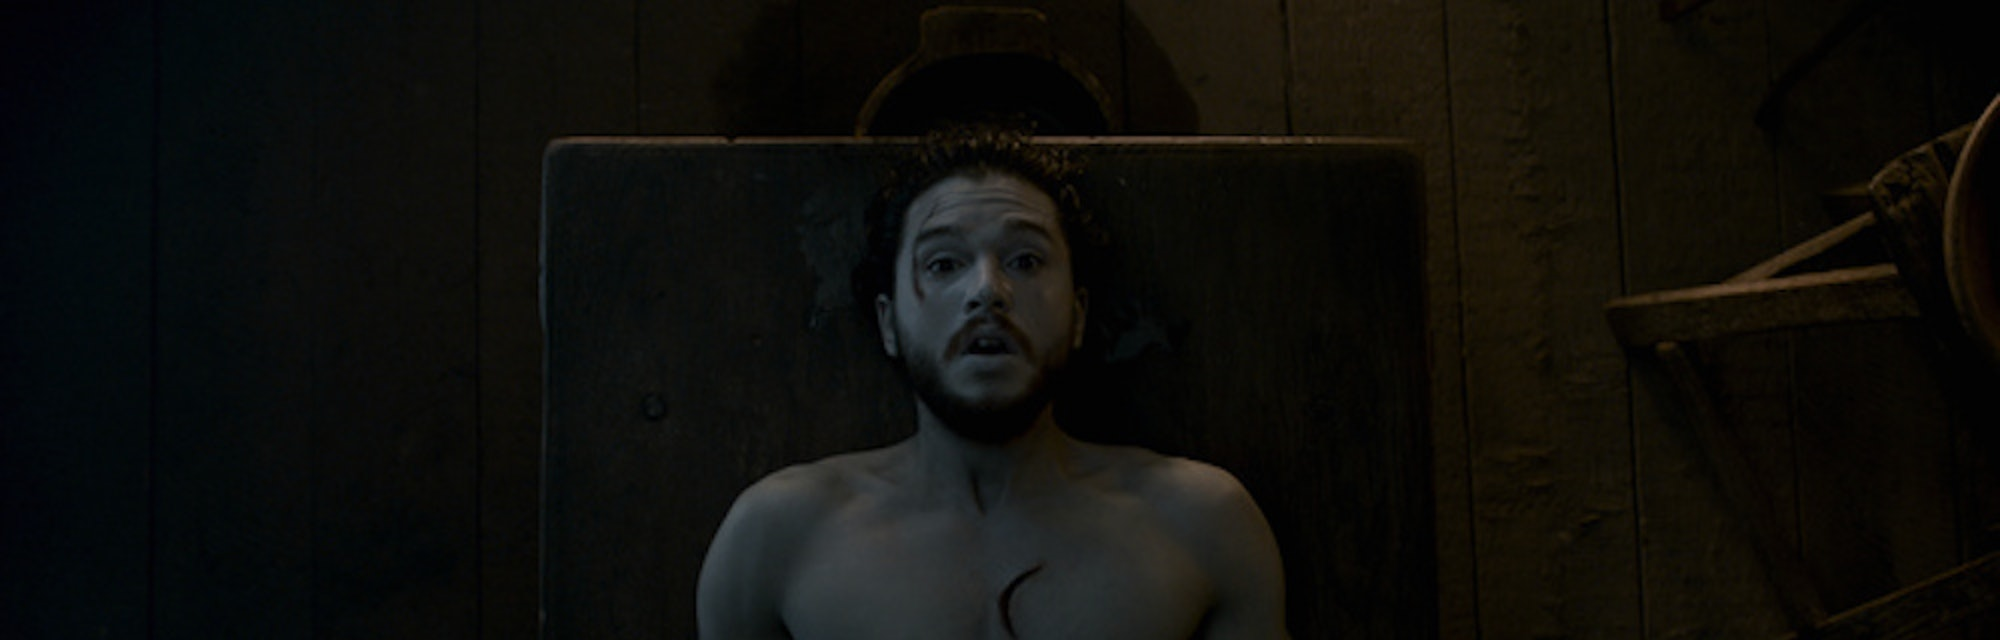 Dicks game of thrones A Motherfucking